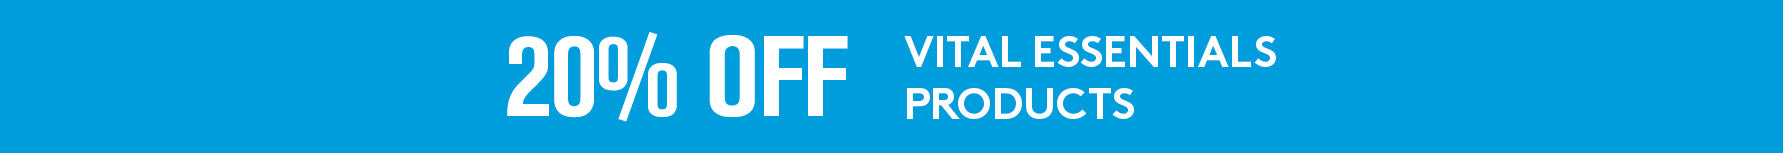 20% off vital essentials products